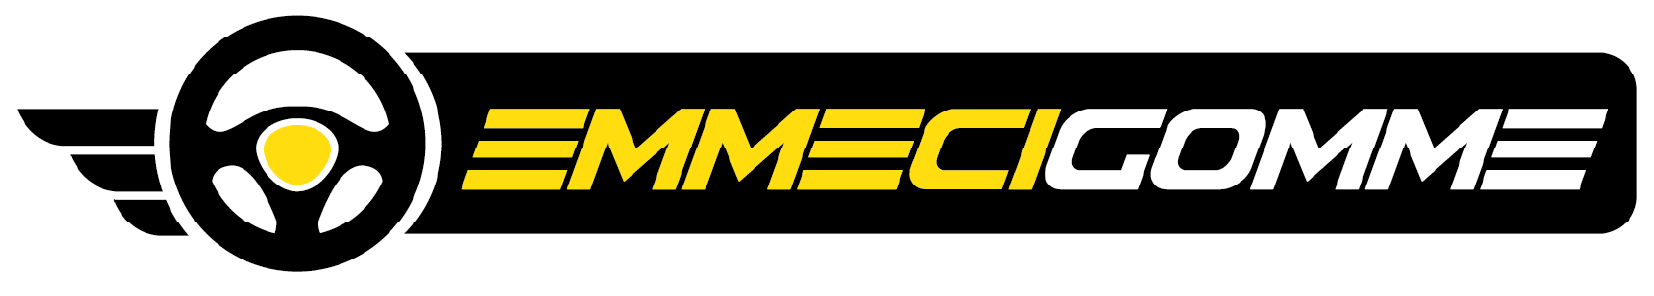 EMMECI Gomme